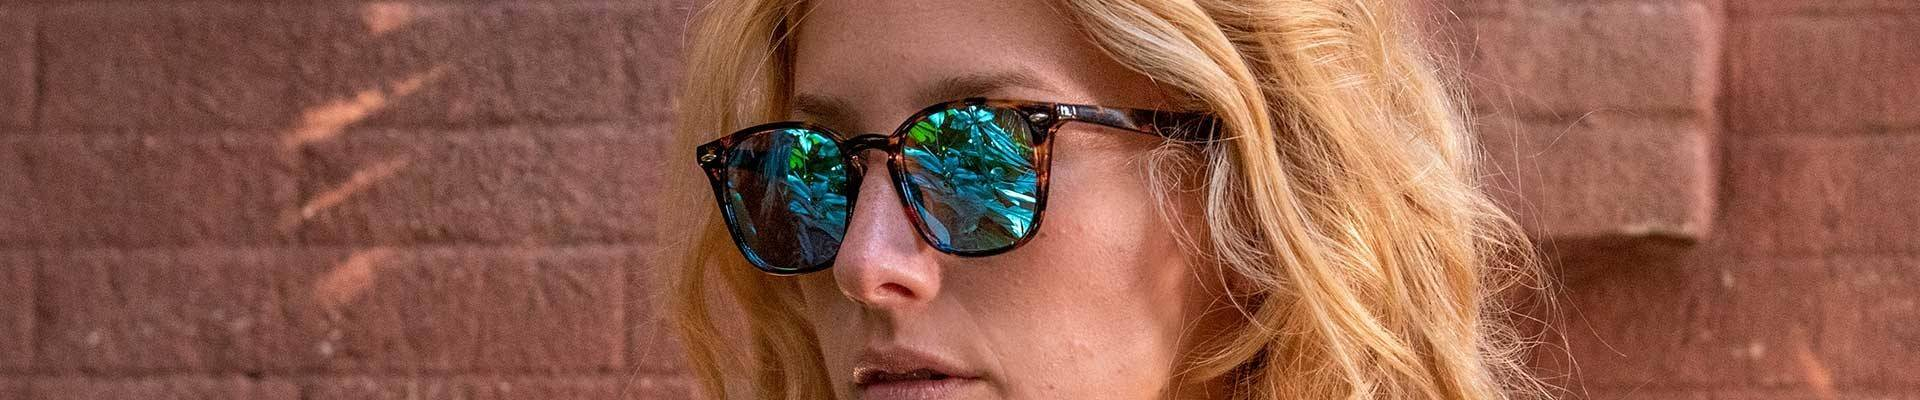 Mirrored sunglasses by Charly Therapy